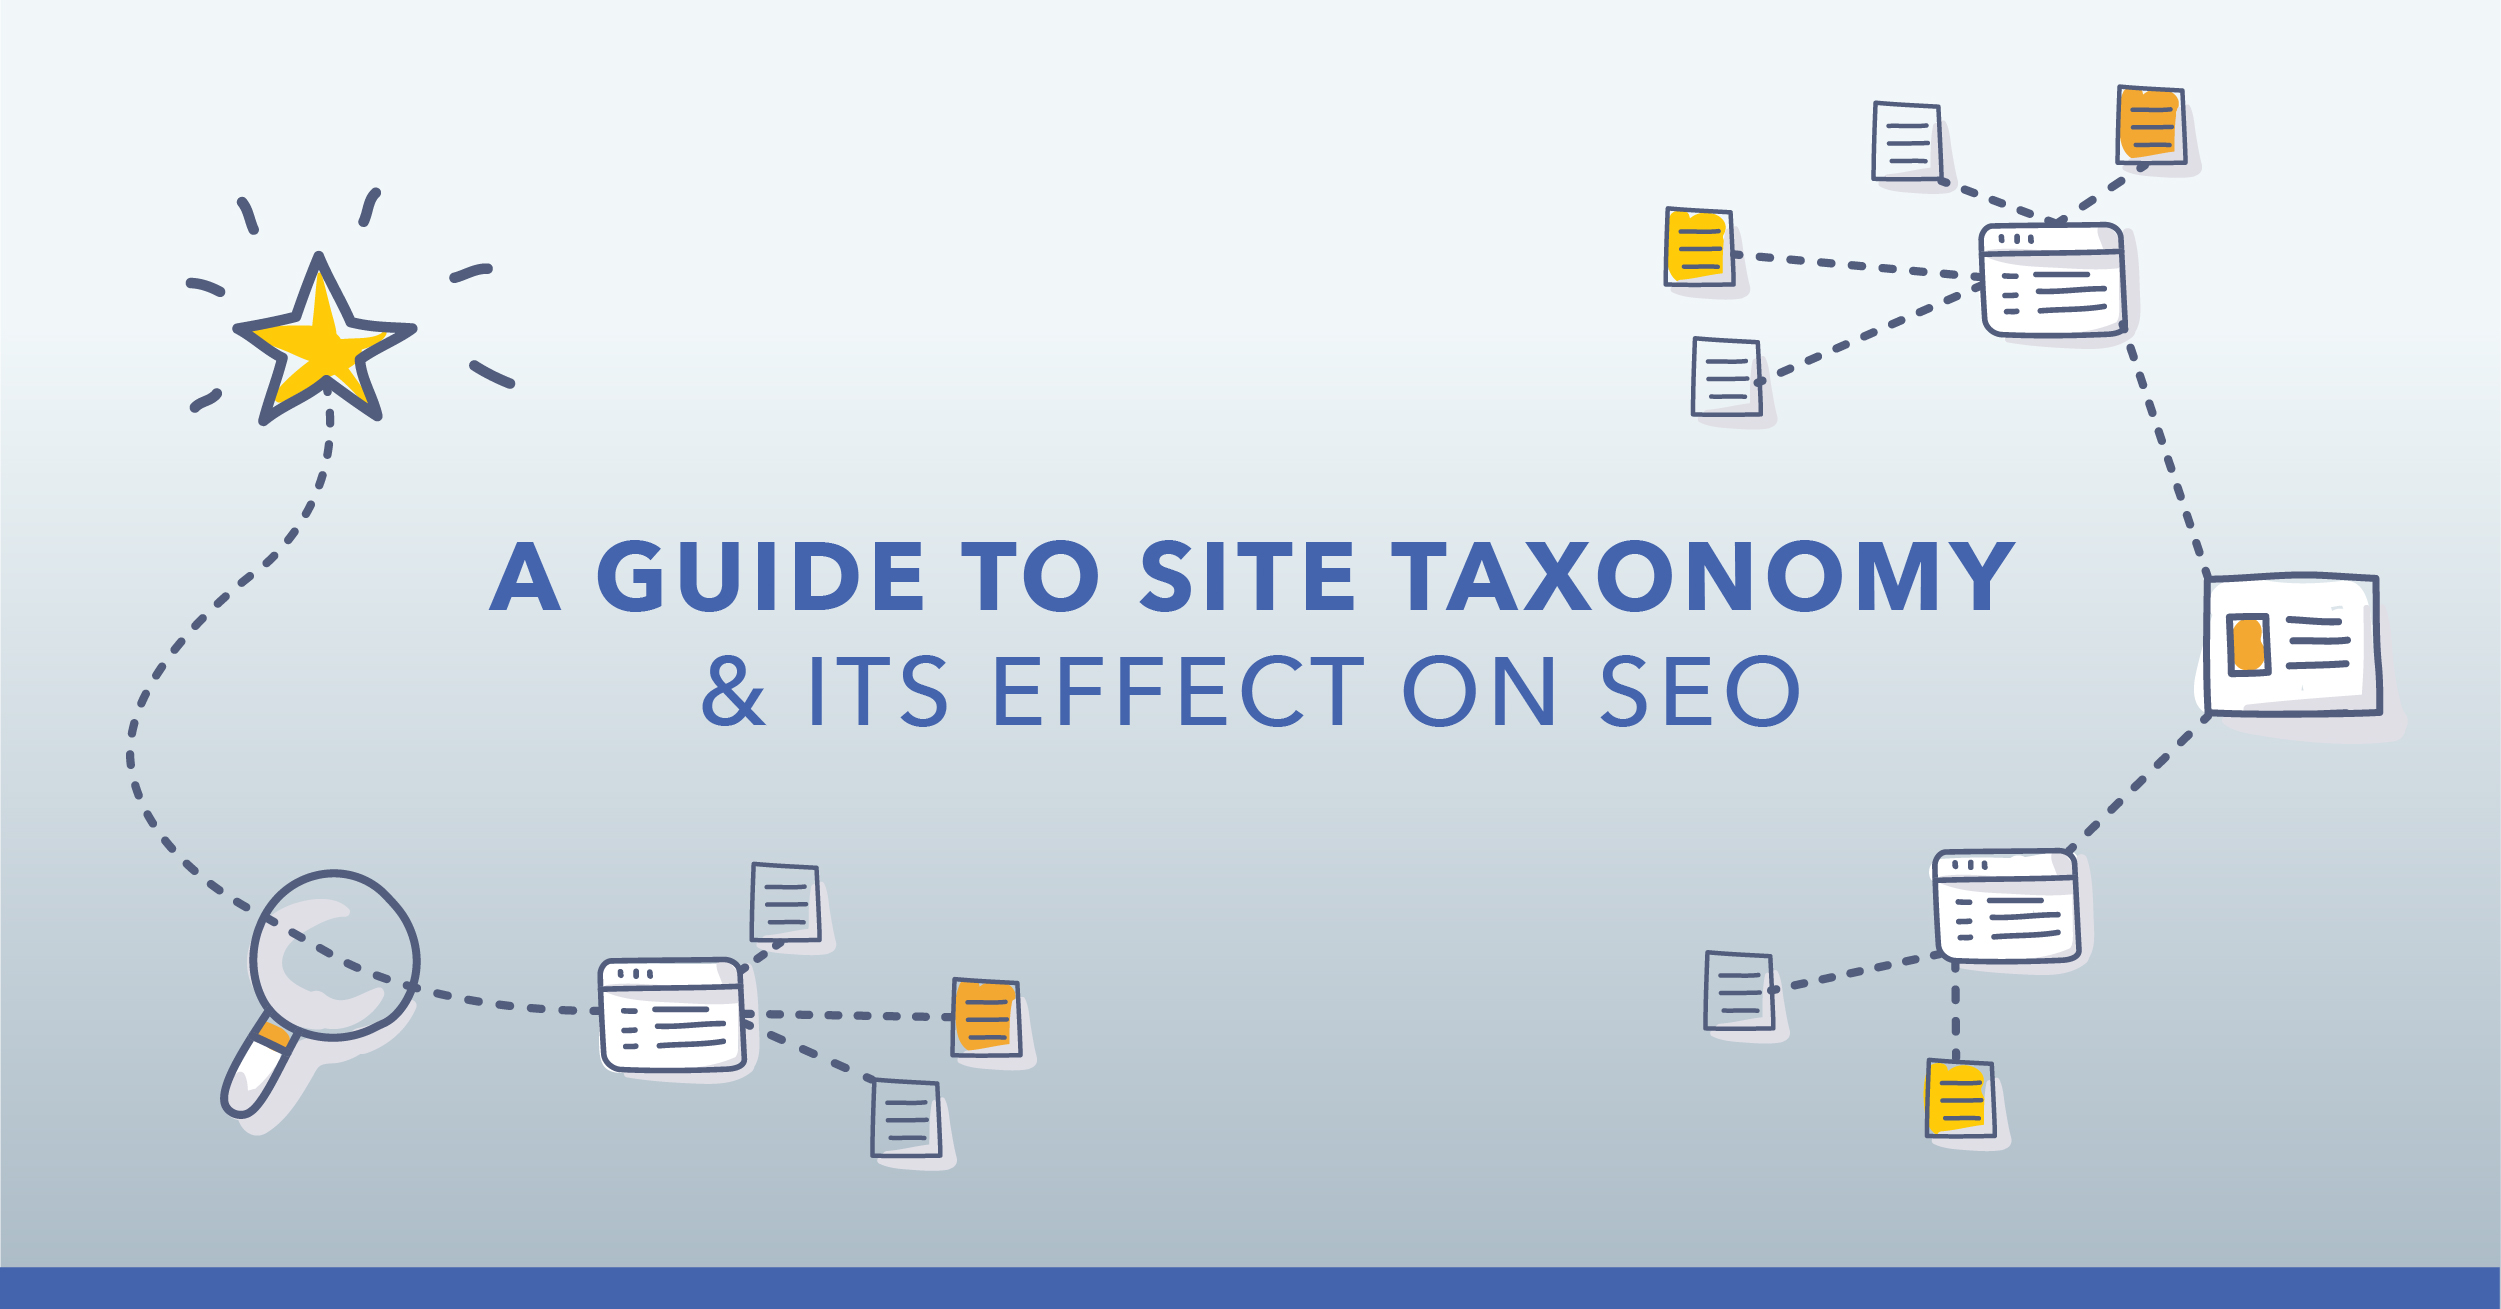 Site Taxonomy_BLOG v1.1